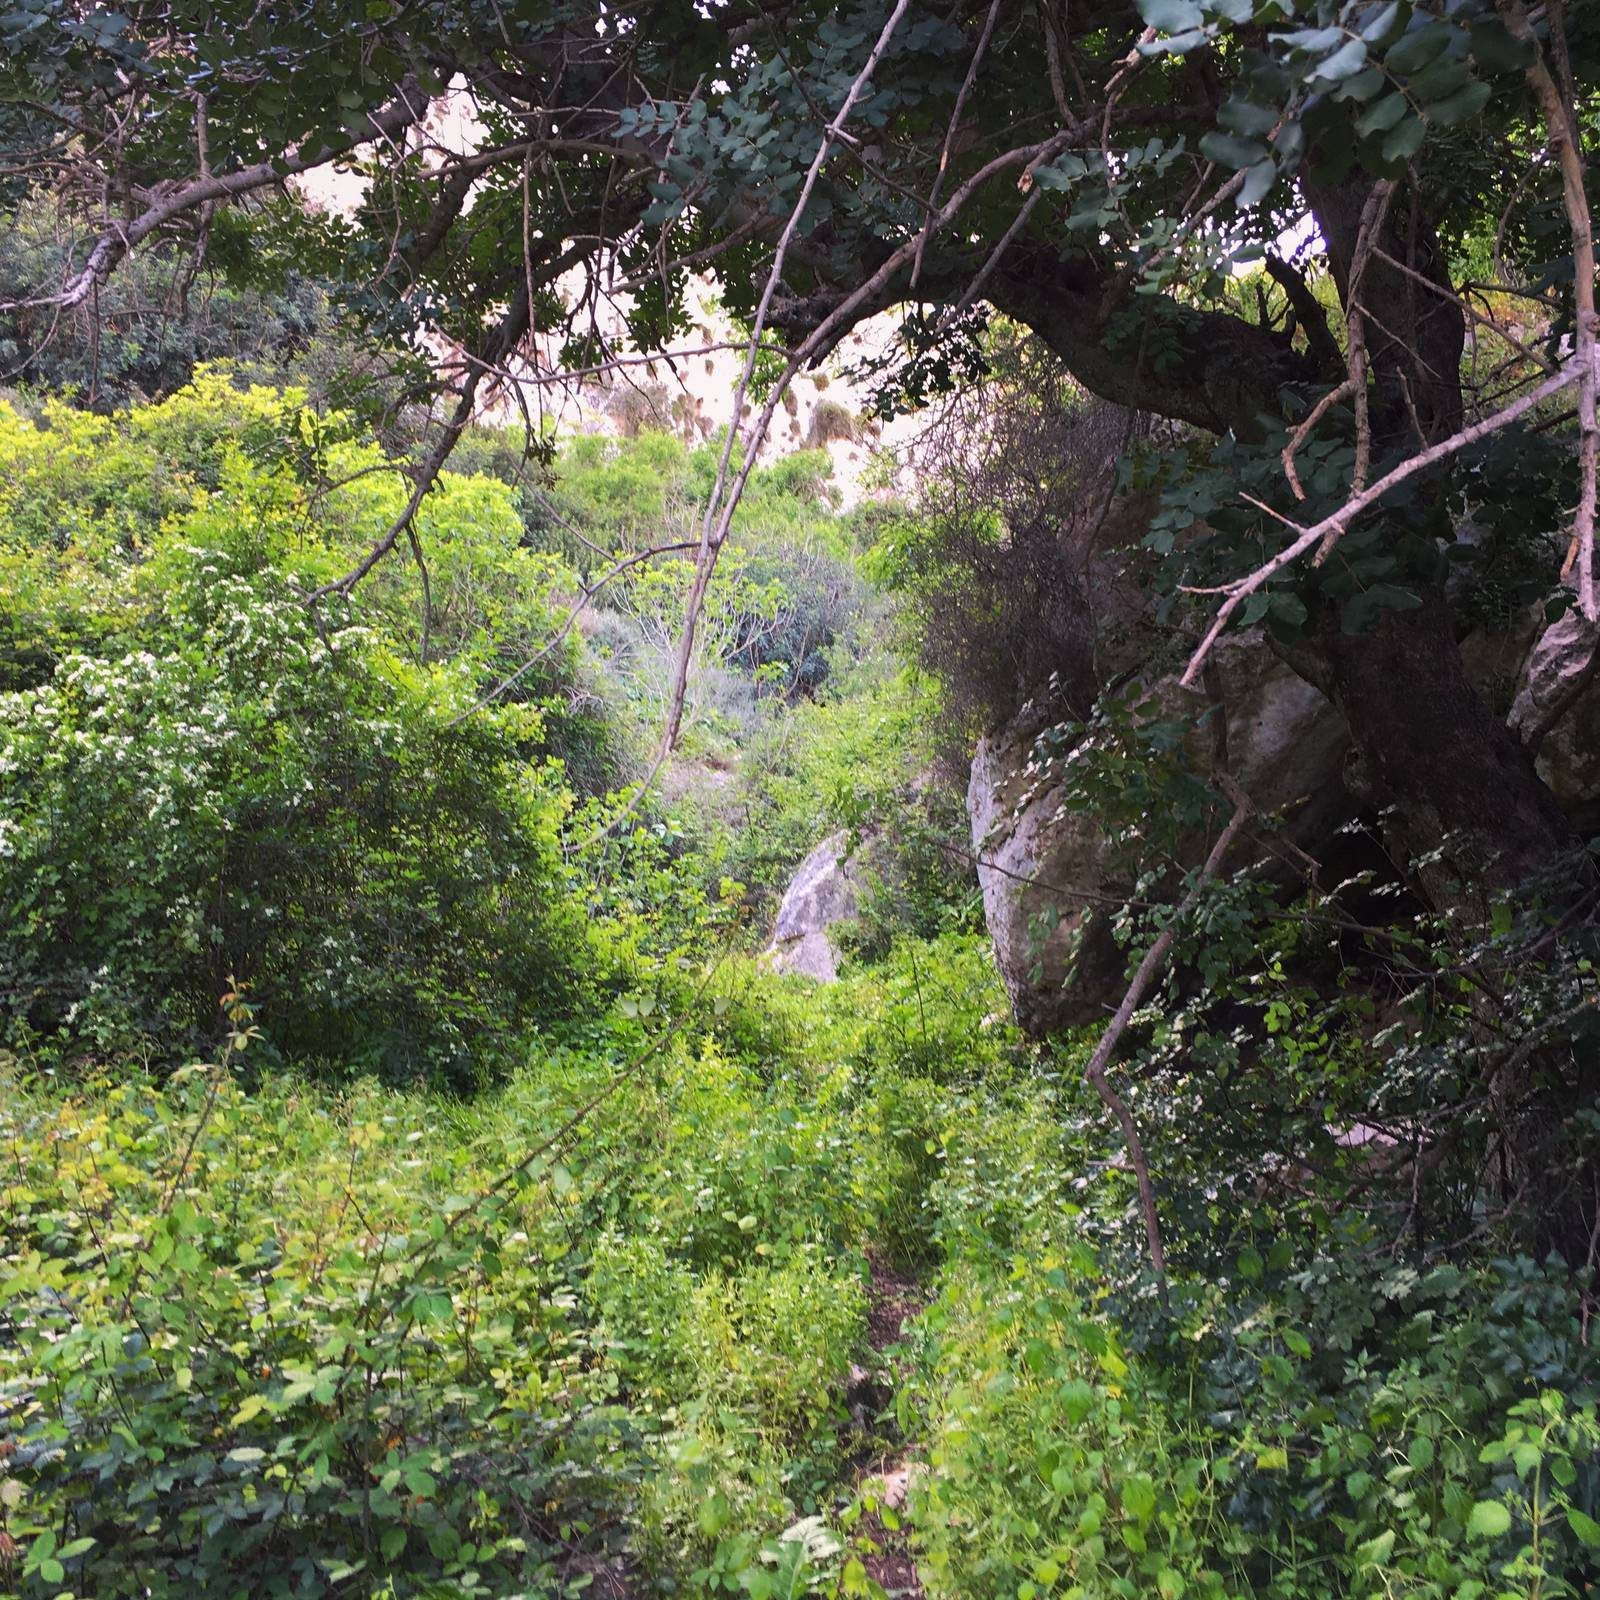 Verdant undergrowth in Mgarr ix-Xini gorge